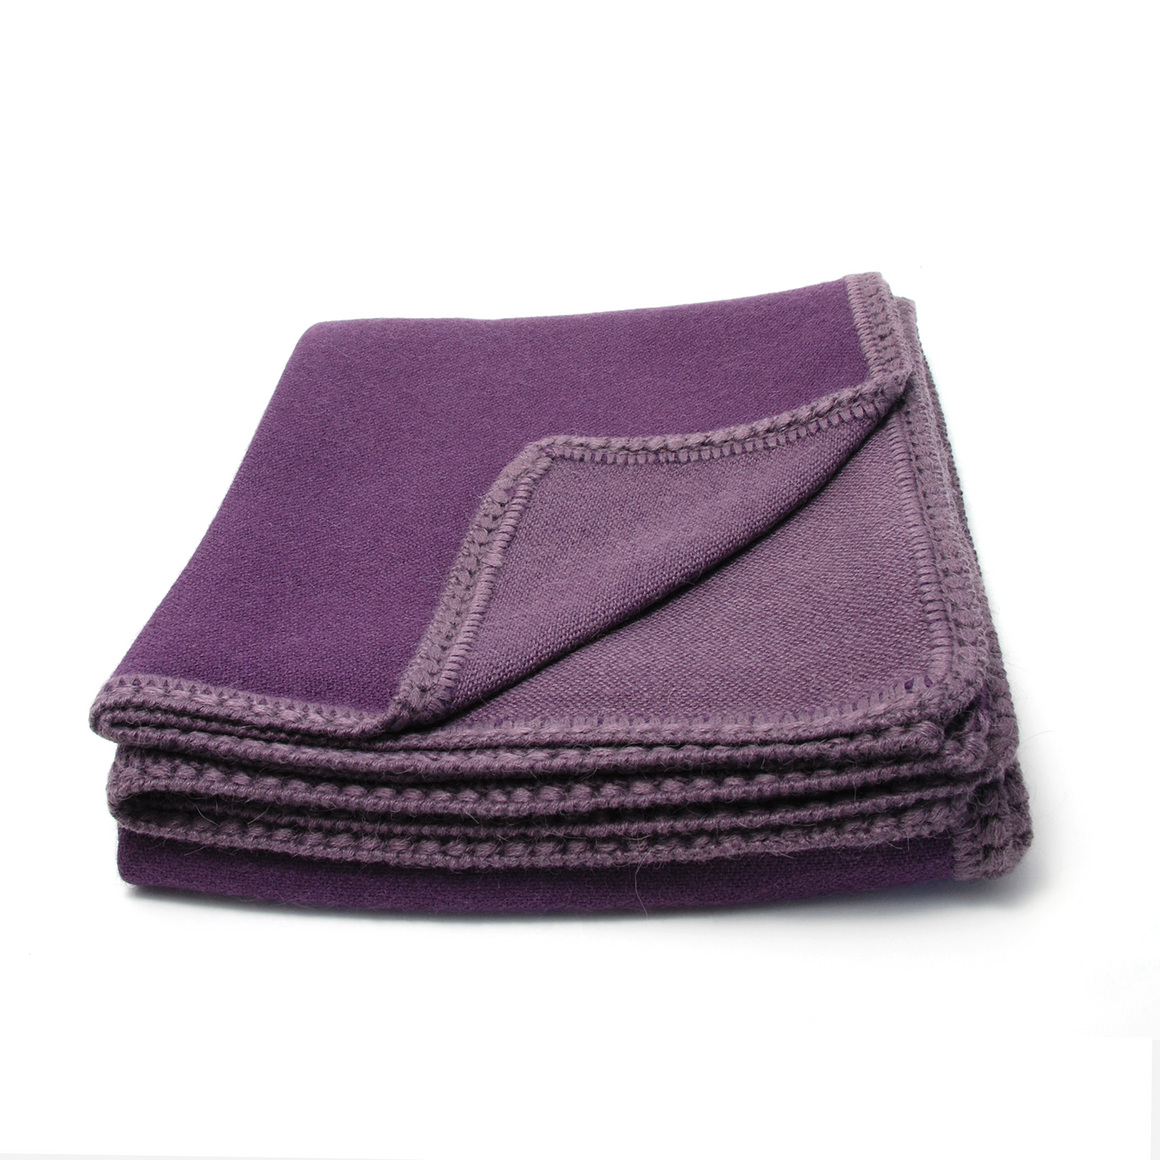 Plum reversible alpaca throw